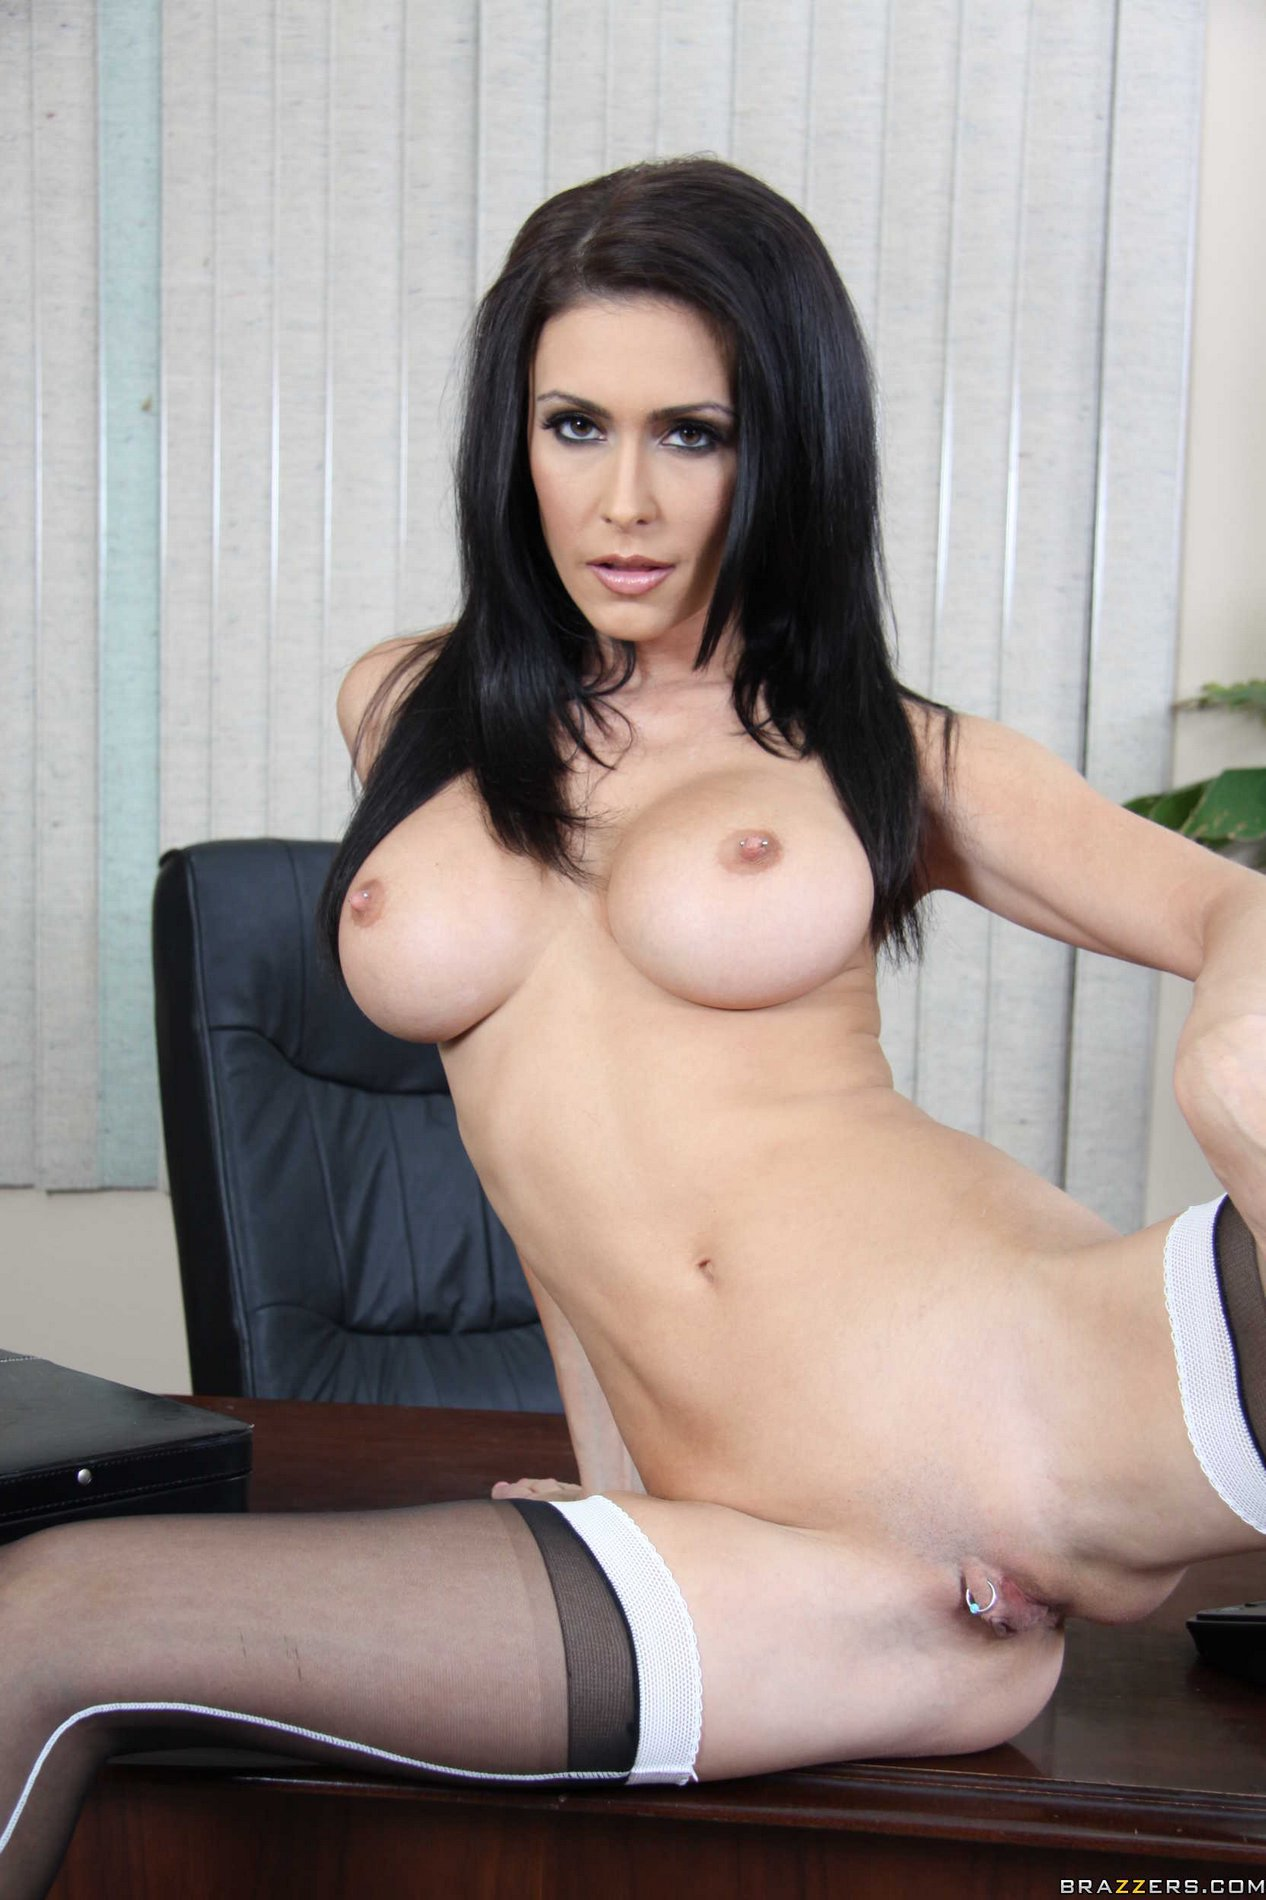 Are mistaken. jessica jaymes full videos not